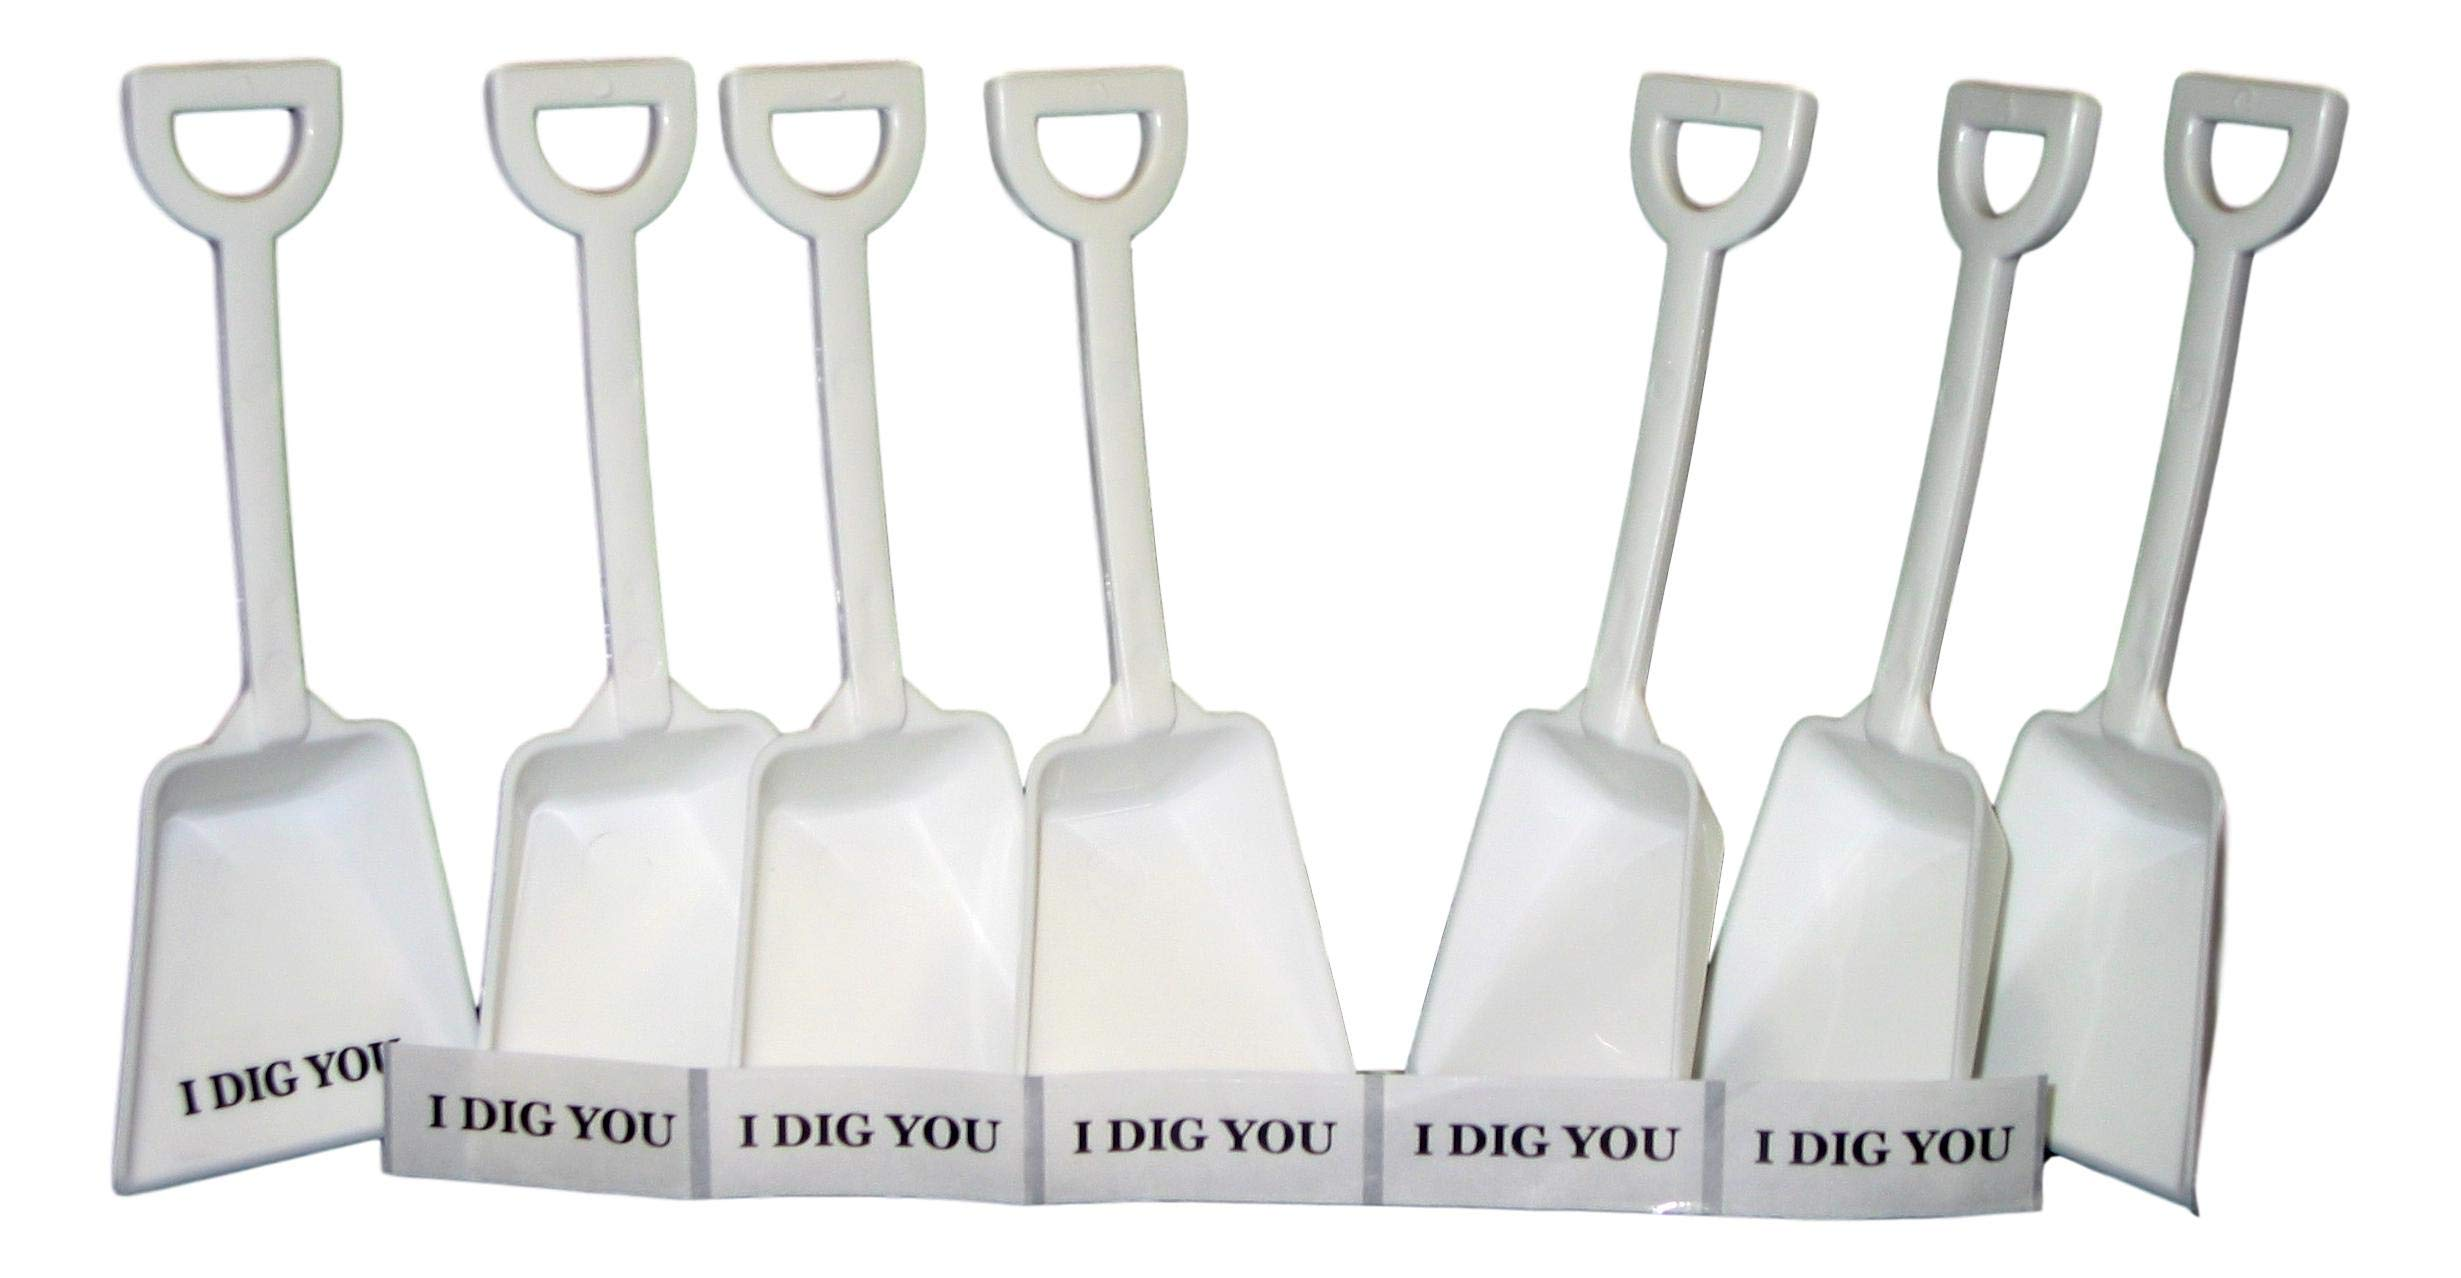 Small Toy Plastic Shovels White, 100 Pack, 7 Inches Tall, 100 I Dig You Stickers by Jean's Plastics